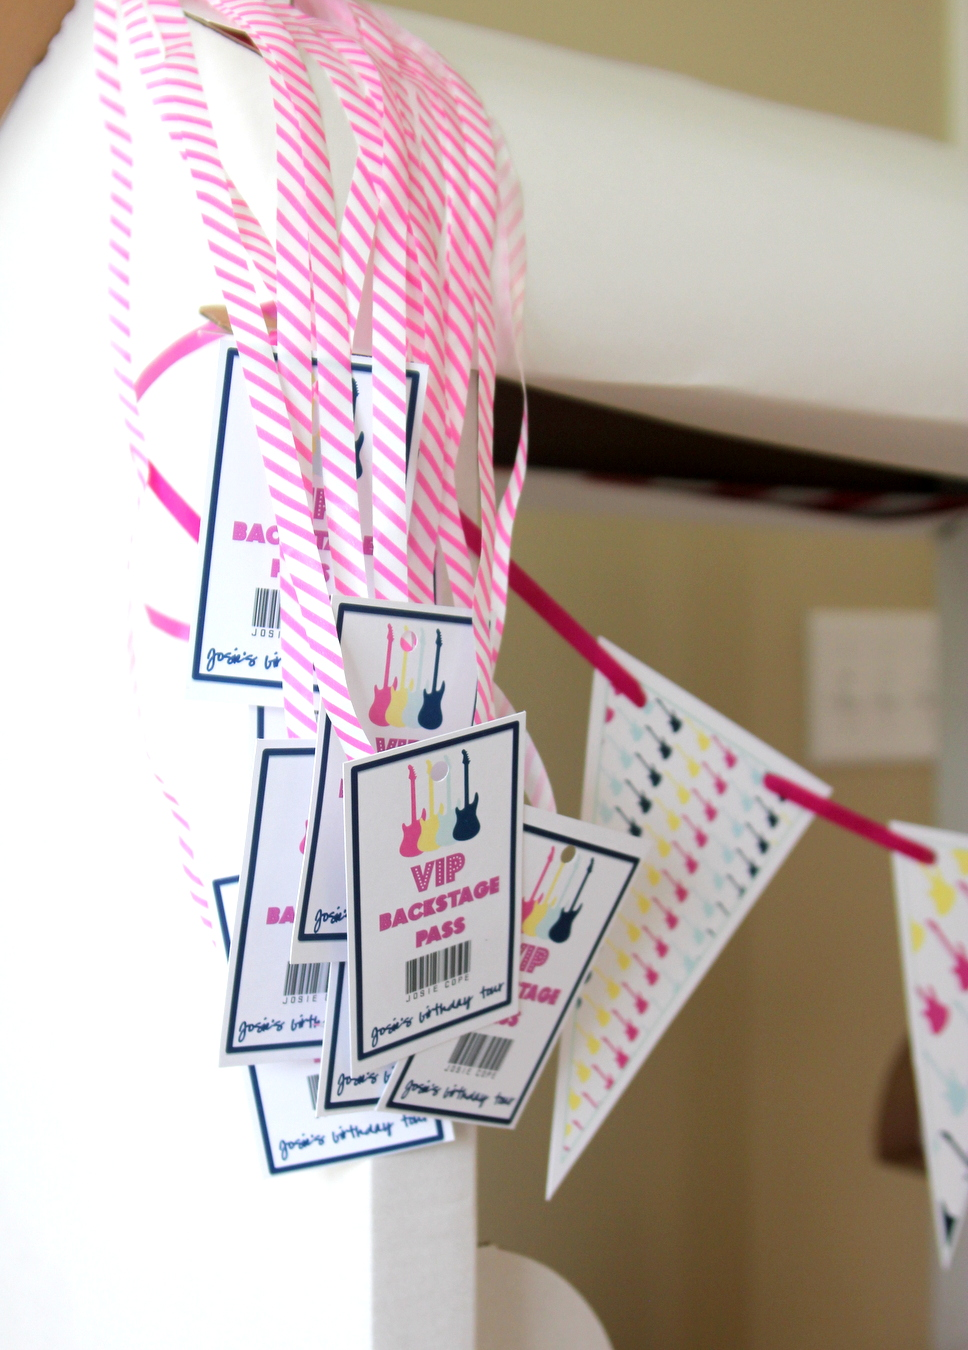 Time to party like a rock star! This sweet rock star birthday party includes all sorts of party ideas- like these 'VIP back stage passes.'